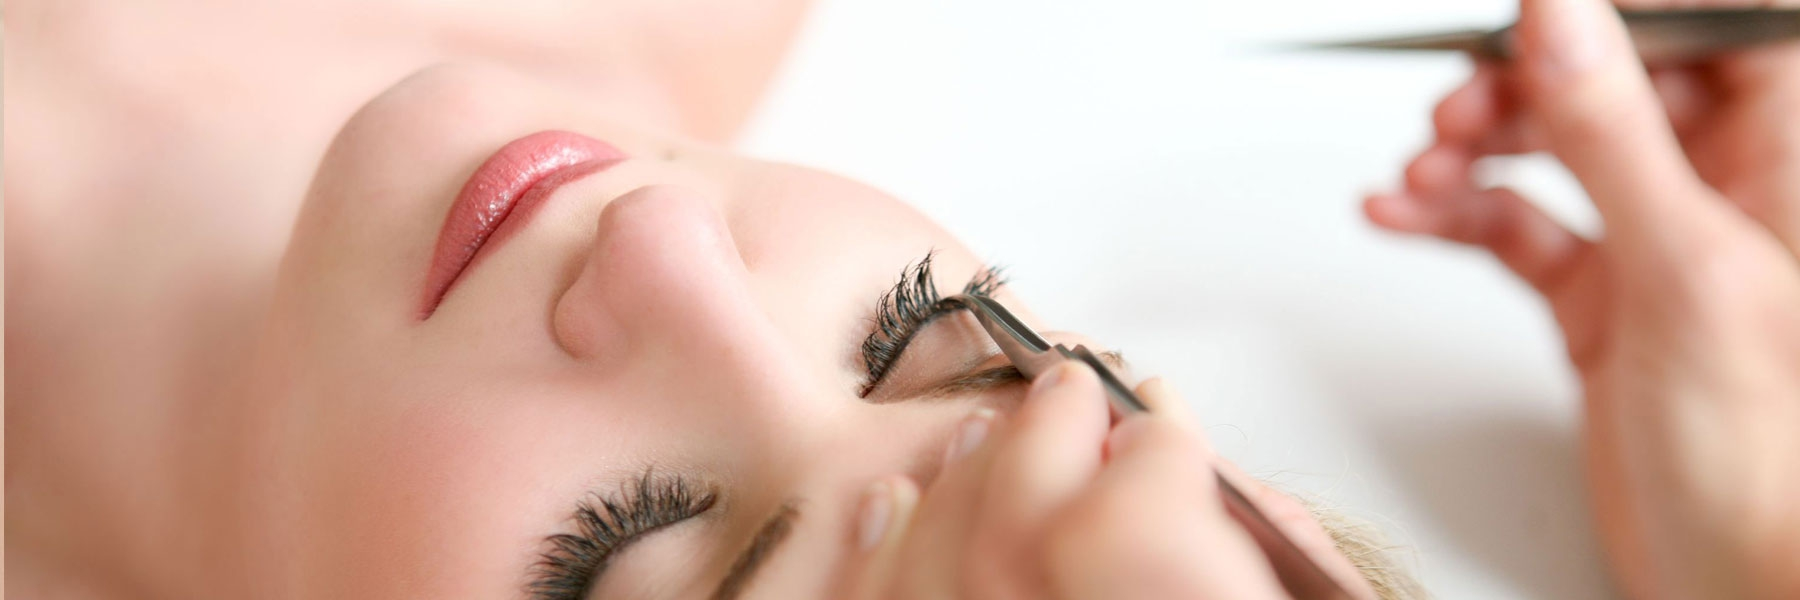 Eye Lash Extension Maquillage Skin Care